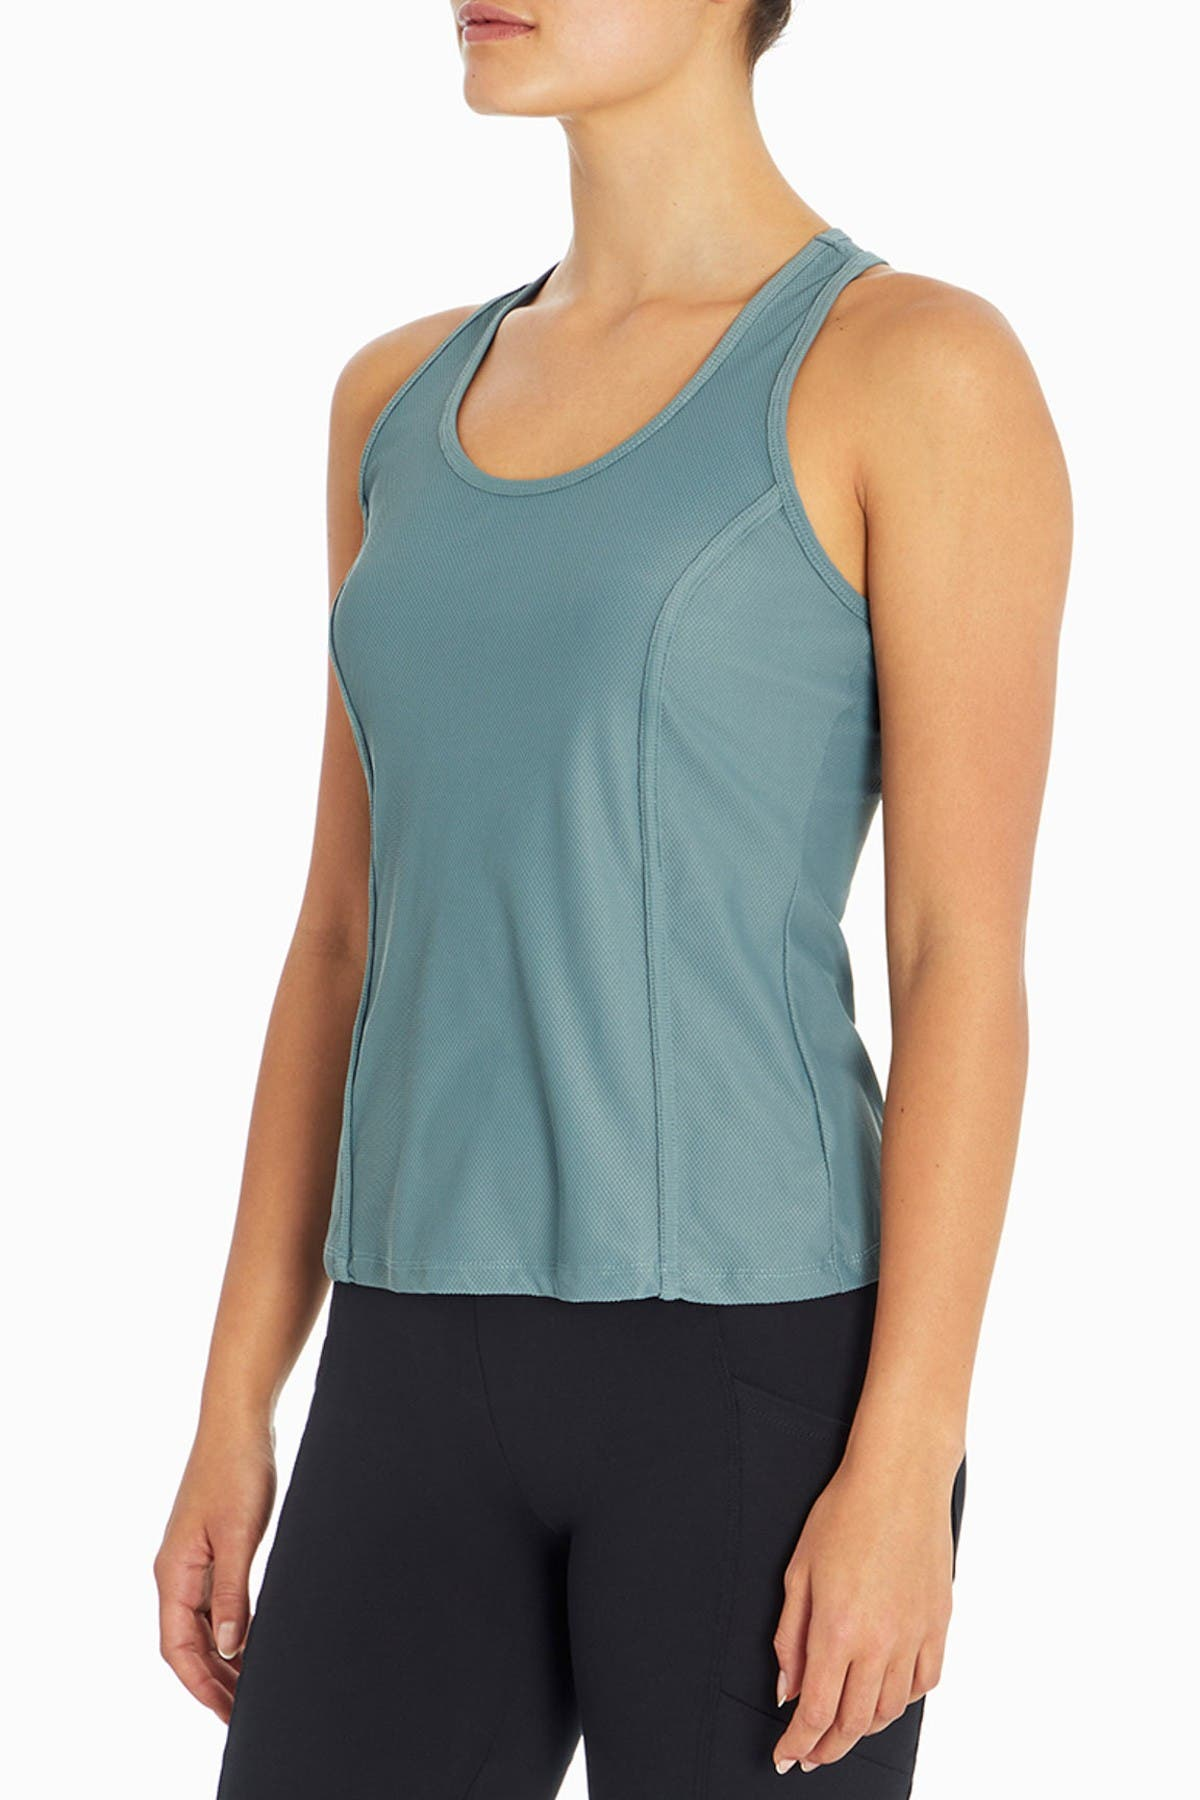 Image of Jessica Simpson Urban Tank Top